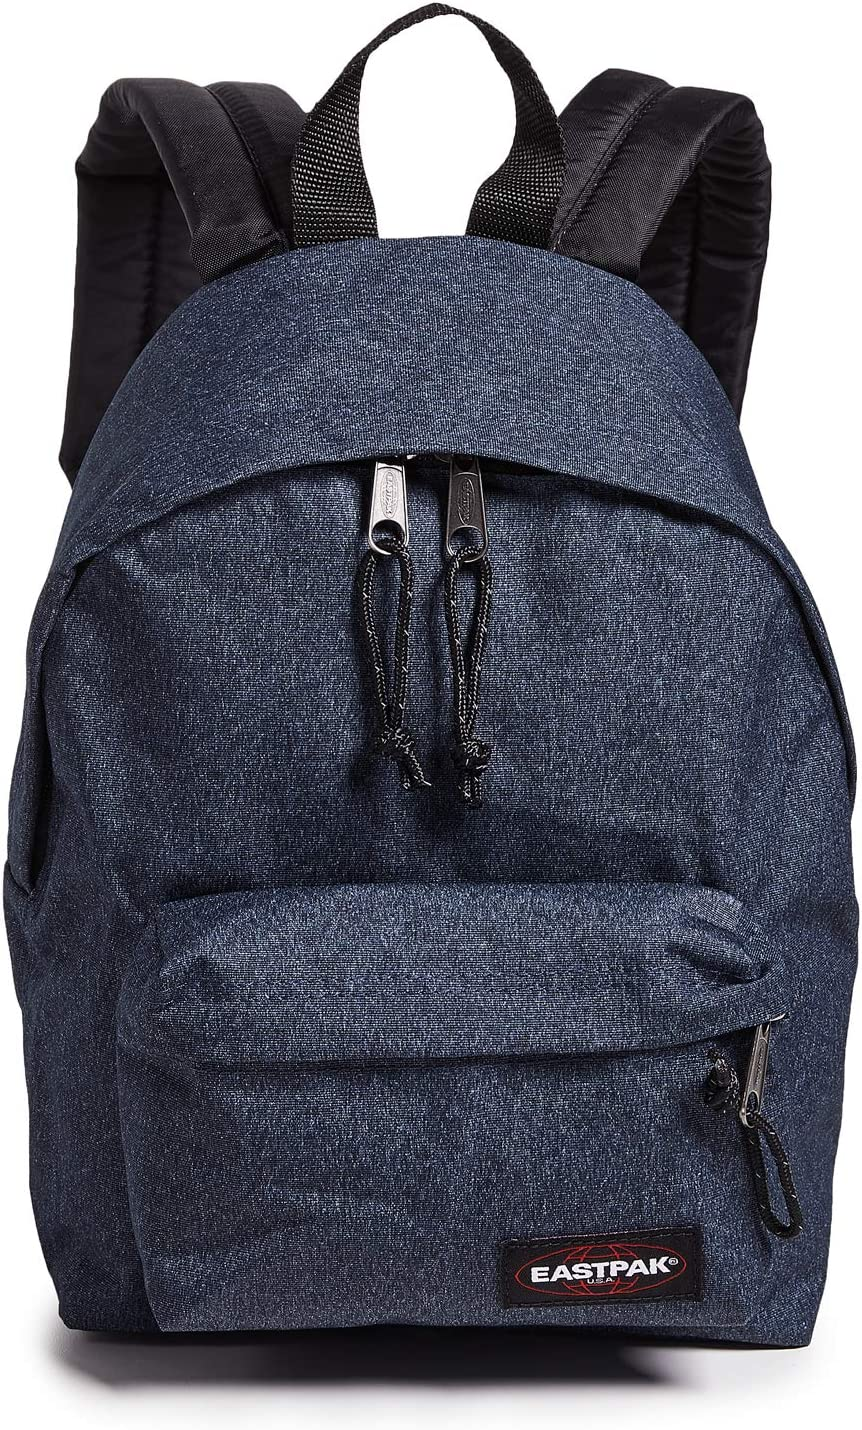 Eastpak Orbit Mochila, 10 L, Azul (Double Denim), 33.5 x 23 cm x ...